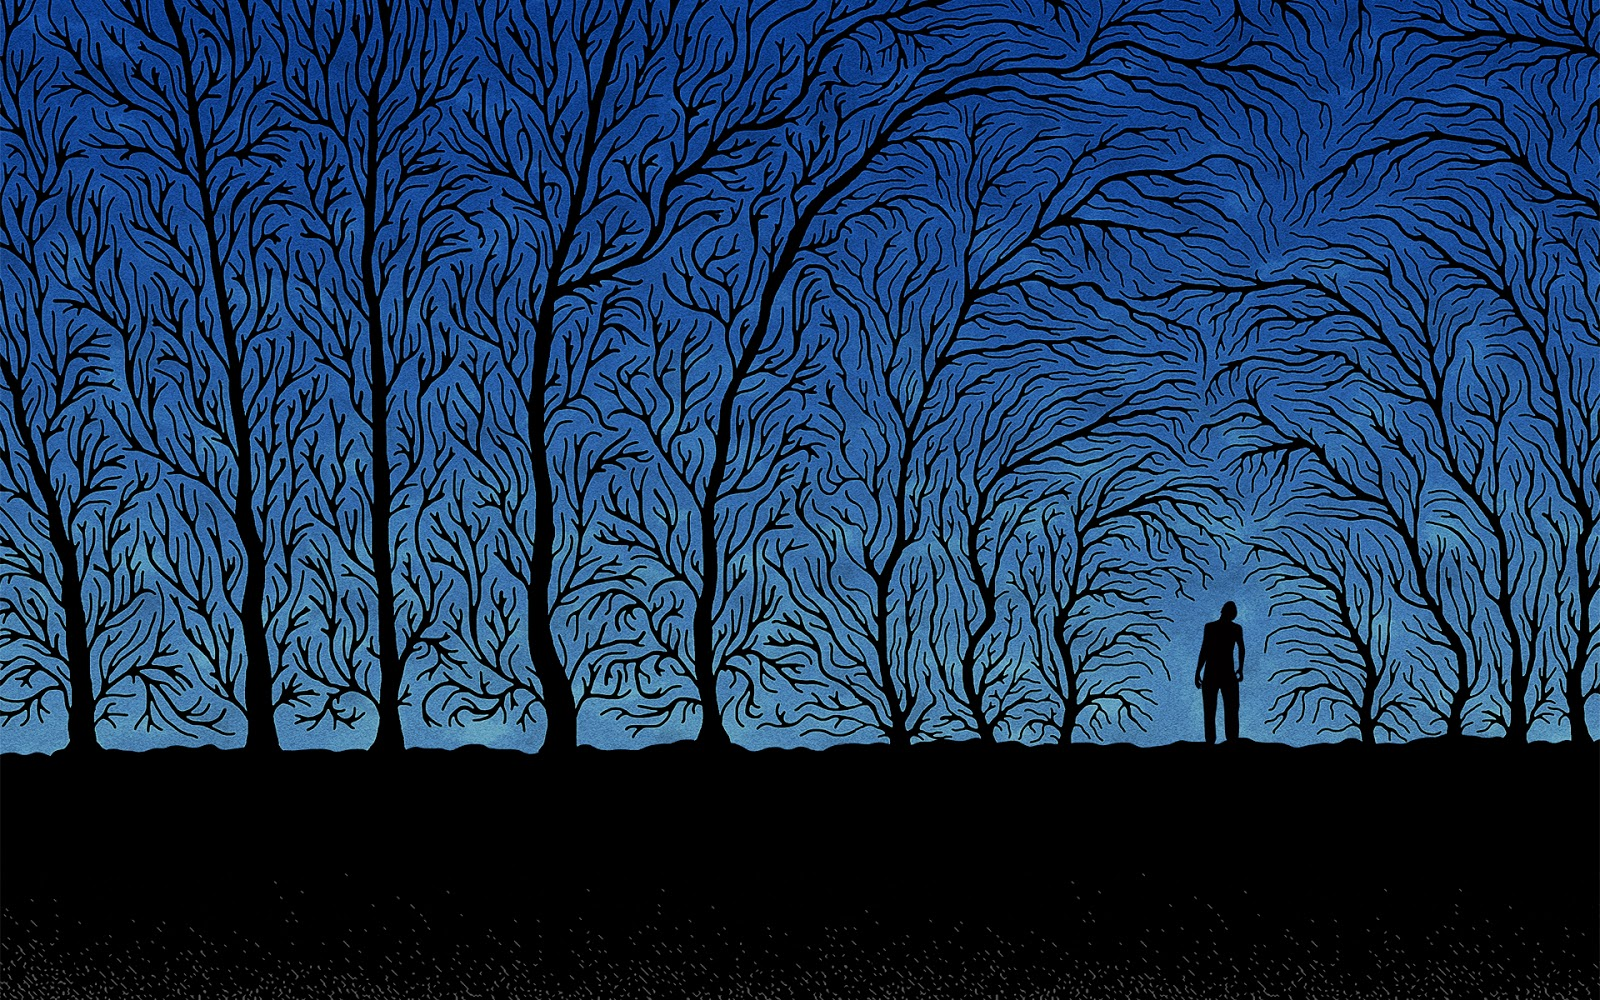 Oil-paintings-blue-black-theme-lonely-man-HD-picture.jpg